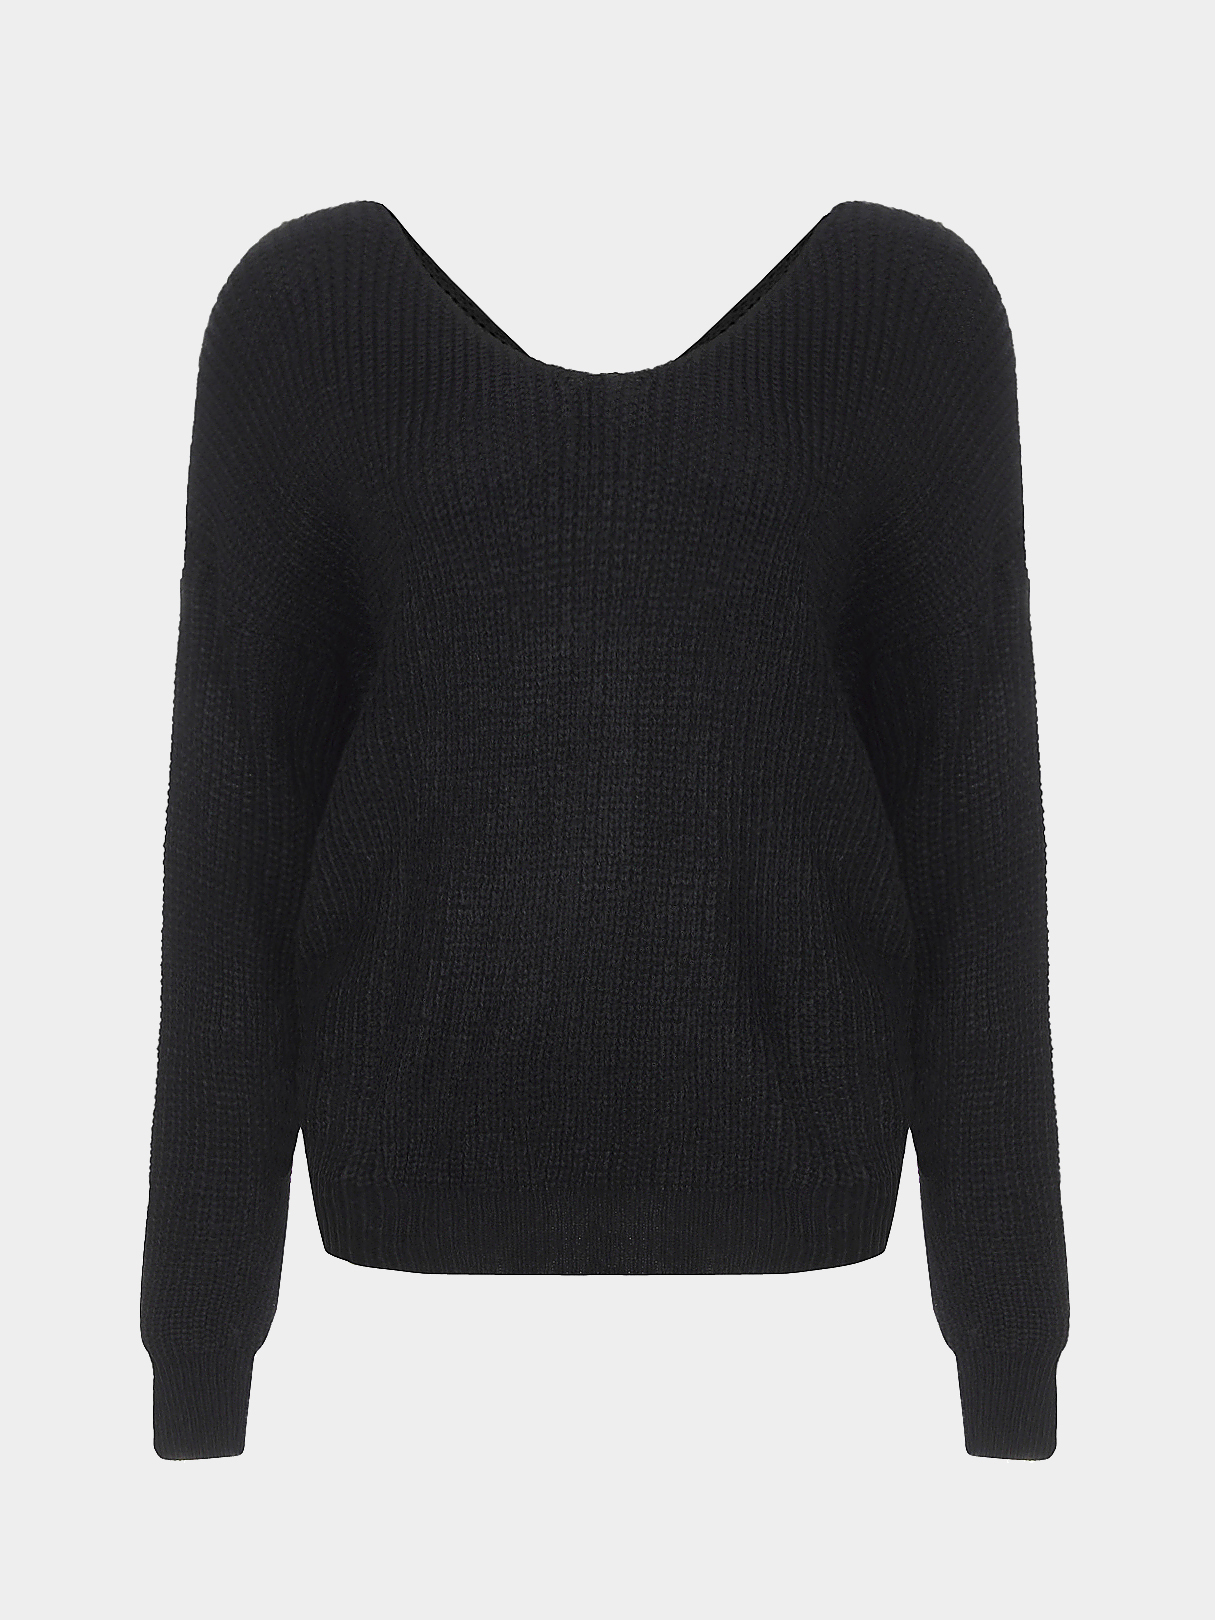 Black V-neck Long Sleeves Cross Back Sweater black sexy cross back bottoming jumper